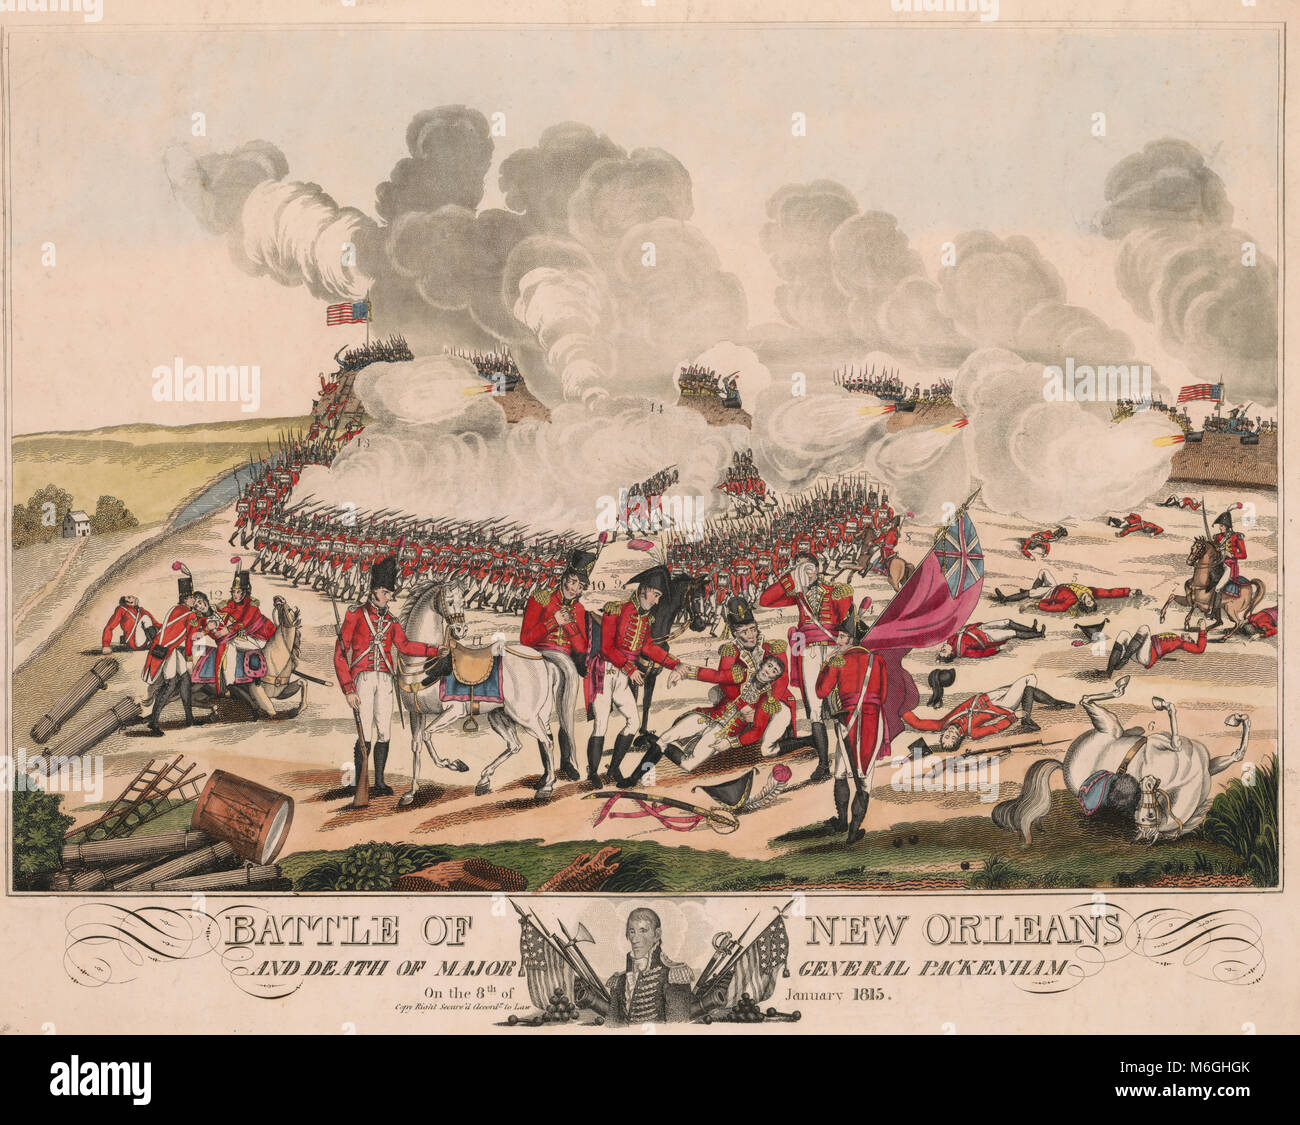 Battle of New Orleans and death of Major General Pakenham on the 8th of January 1815 -  Battle of New Orleans from - Stock Image